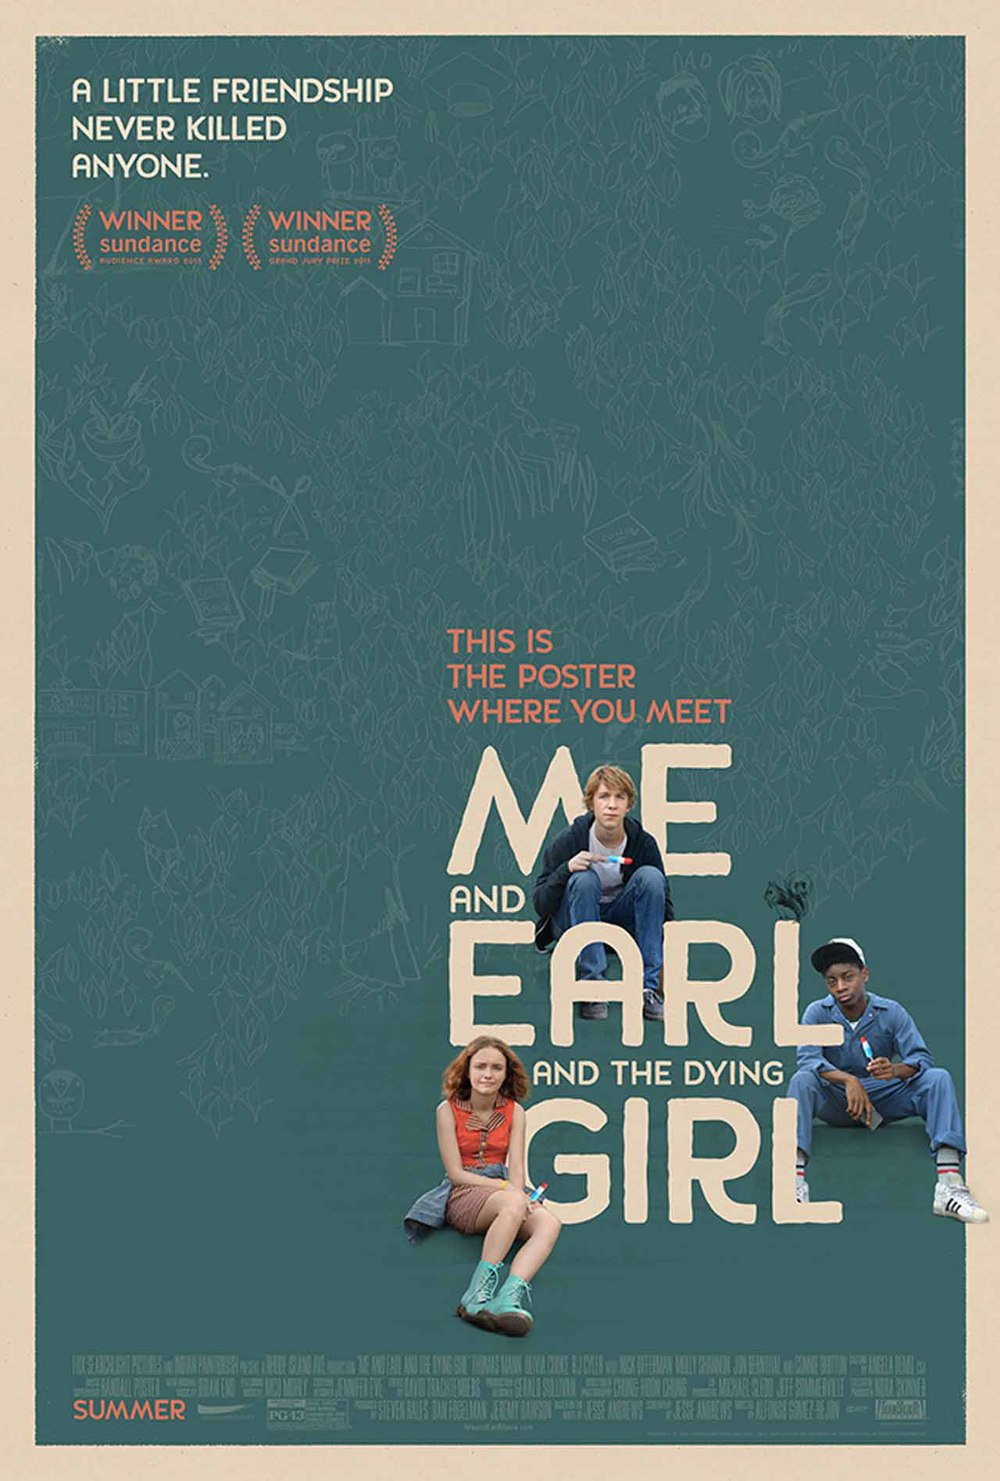 me-and-earl-and-the-dying-girl-poster_20151228072616d2c.jpg